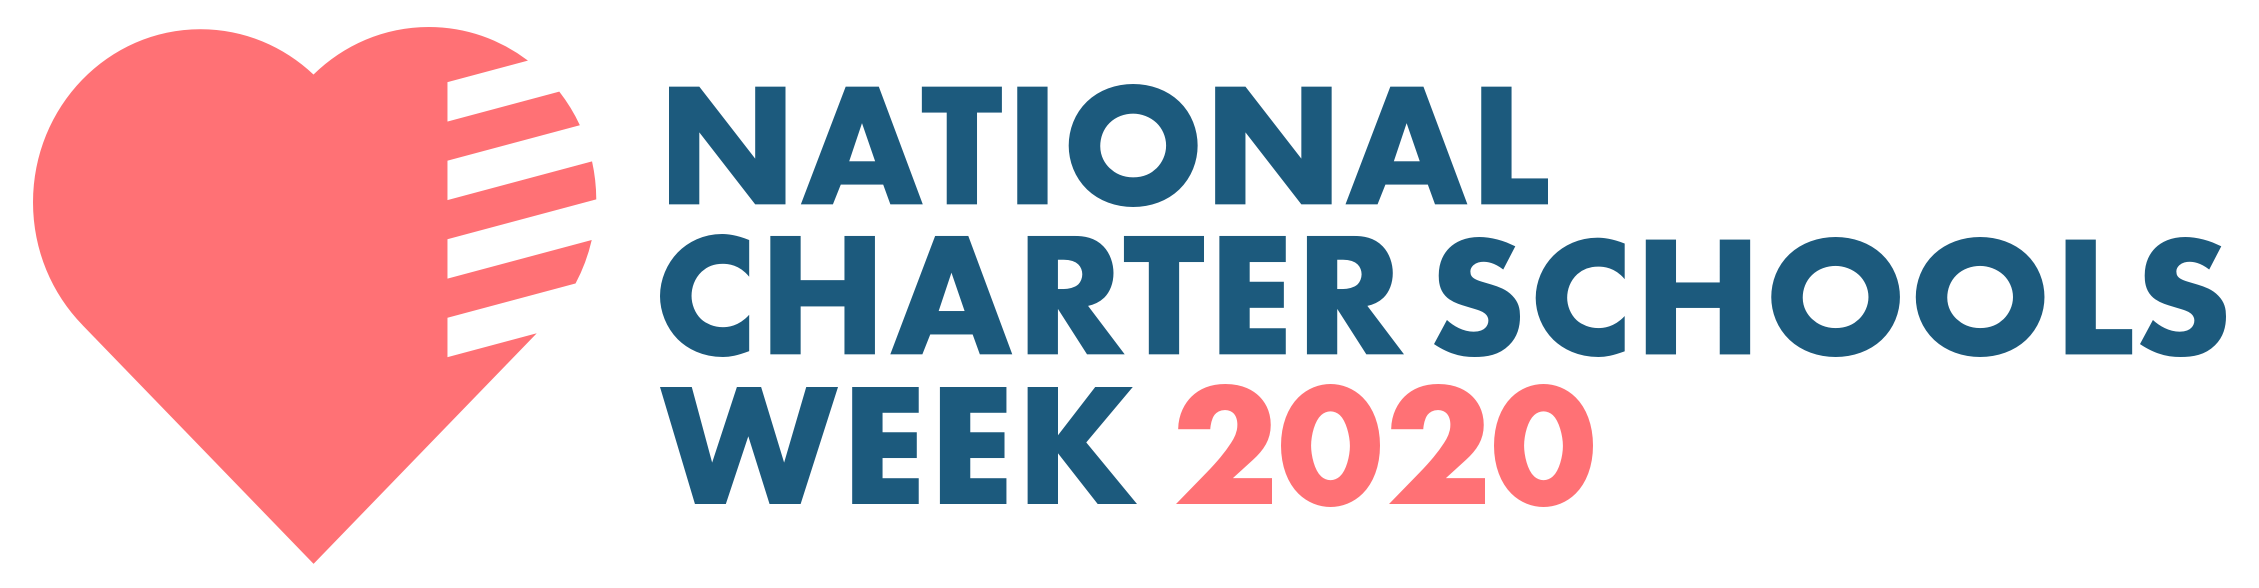 National Charter Schools Week 2020, May 10-16